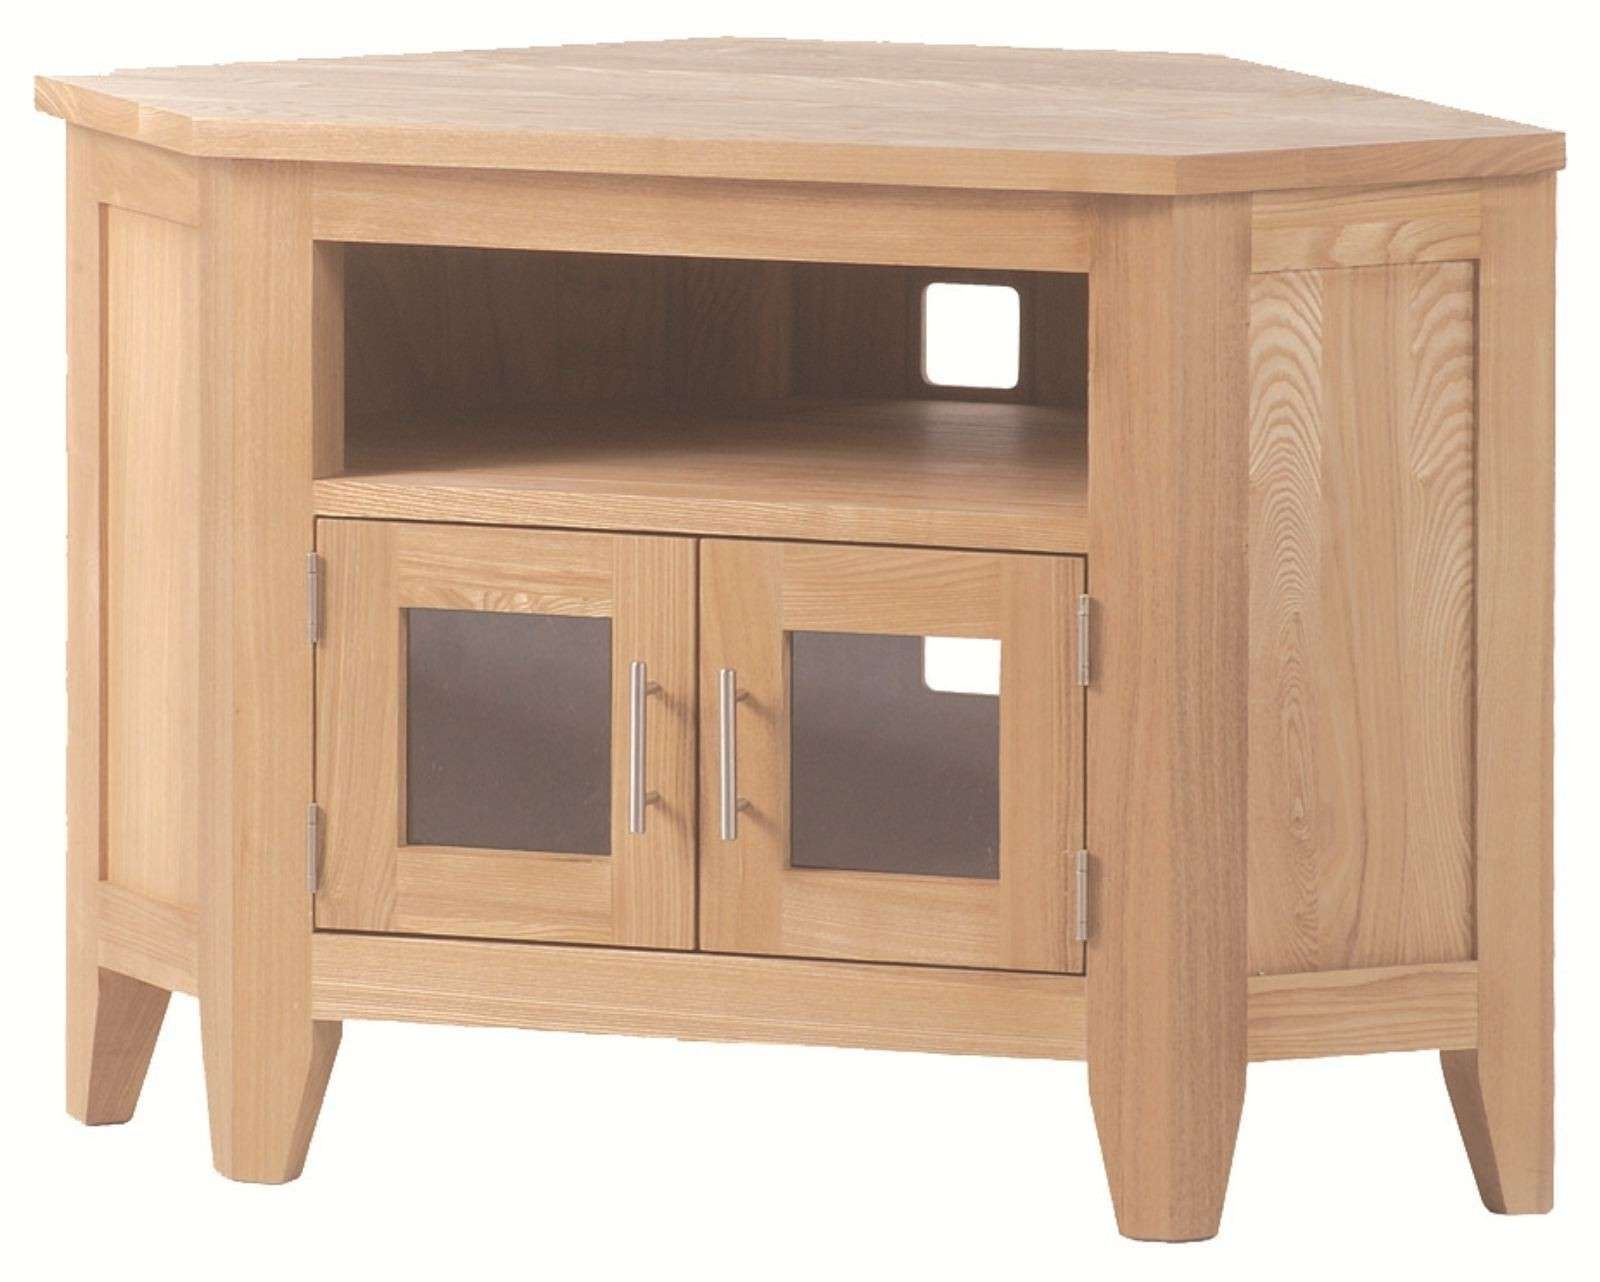 Wooden Corner Tv Stand With Small Cabinet Doors And Silver Handle Throughout Small Corner Tv Cabinets (View 13 of 20)